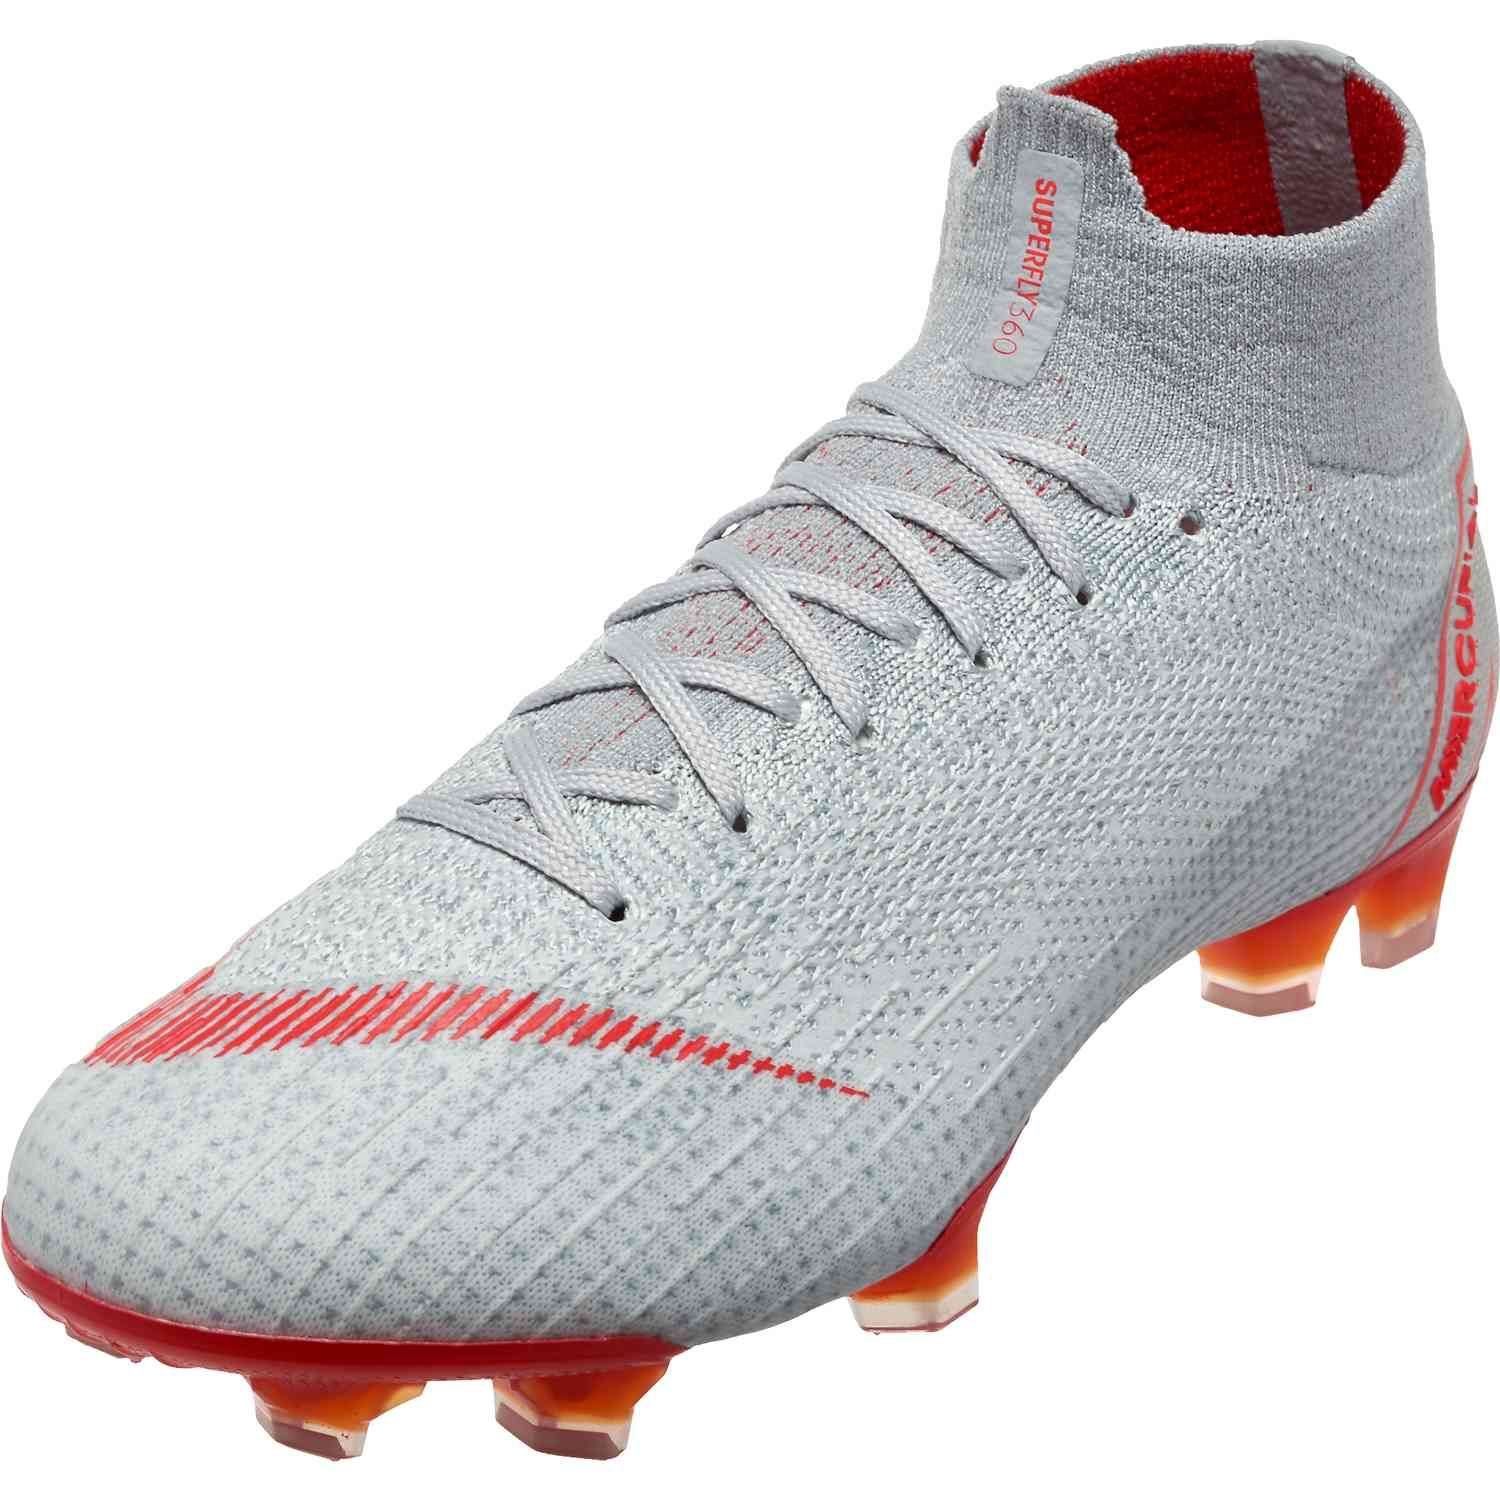 Nike Superfly 6 Elite Fg Wolf Grey Light Crimson Pure Platinum Soccerpro Superfly Soccer Cleats Rugby Boots Nike Soccer Shoes